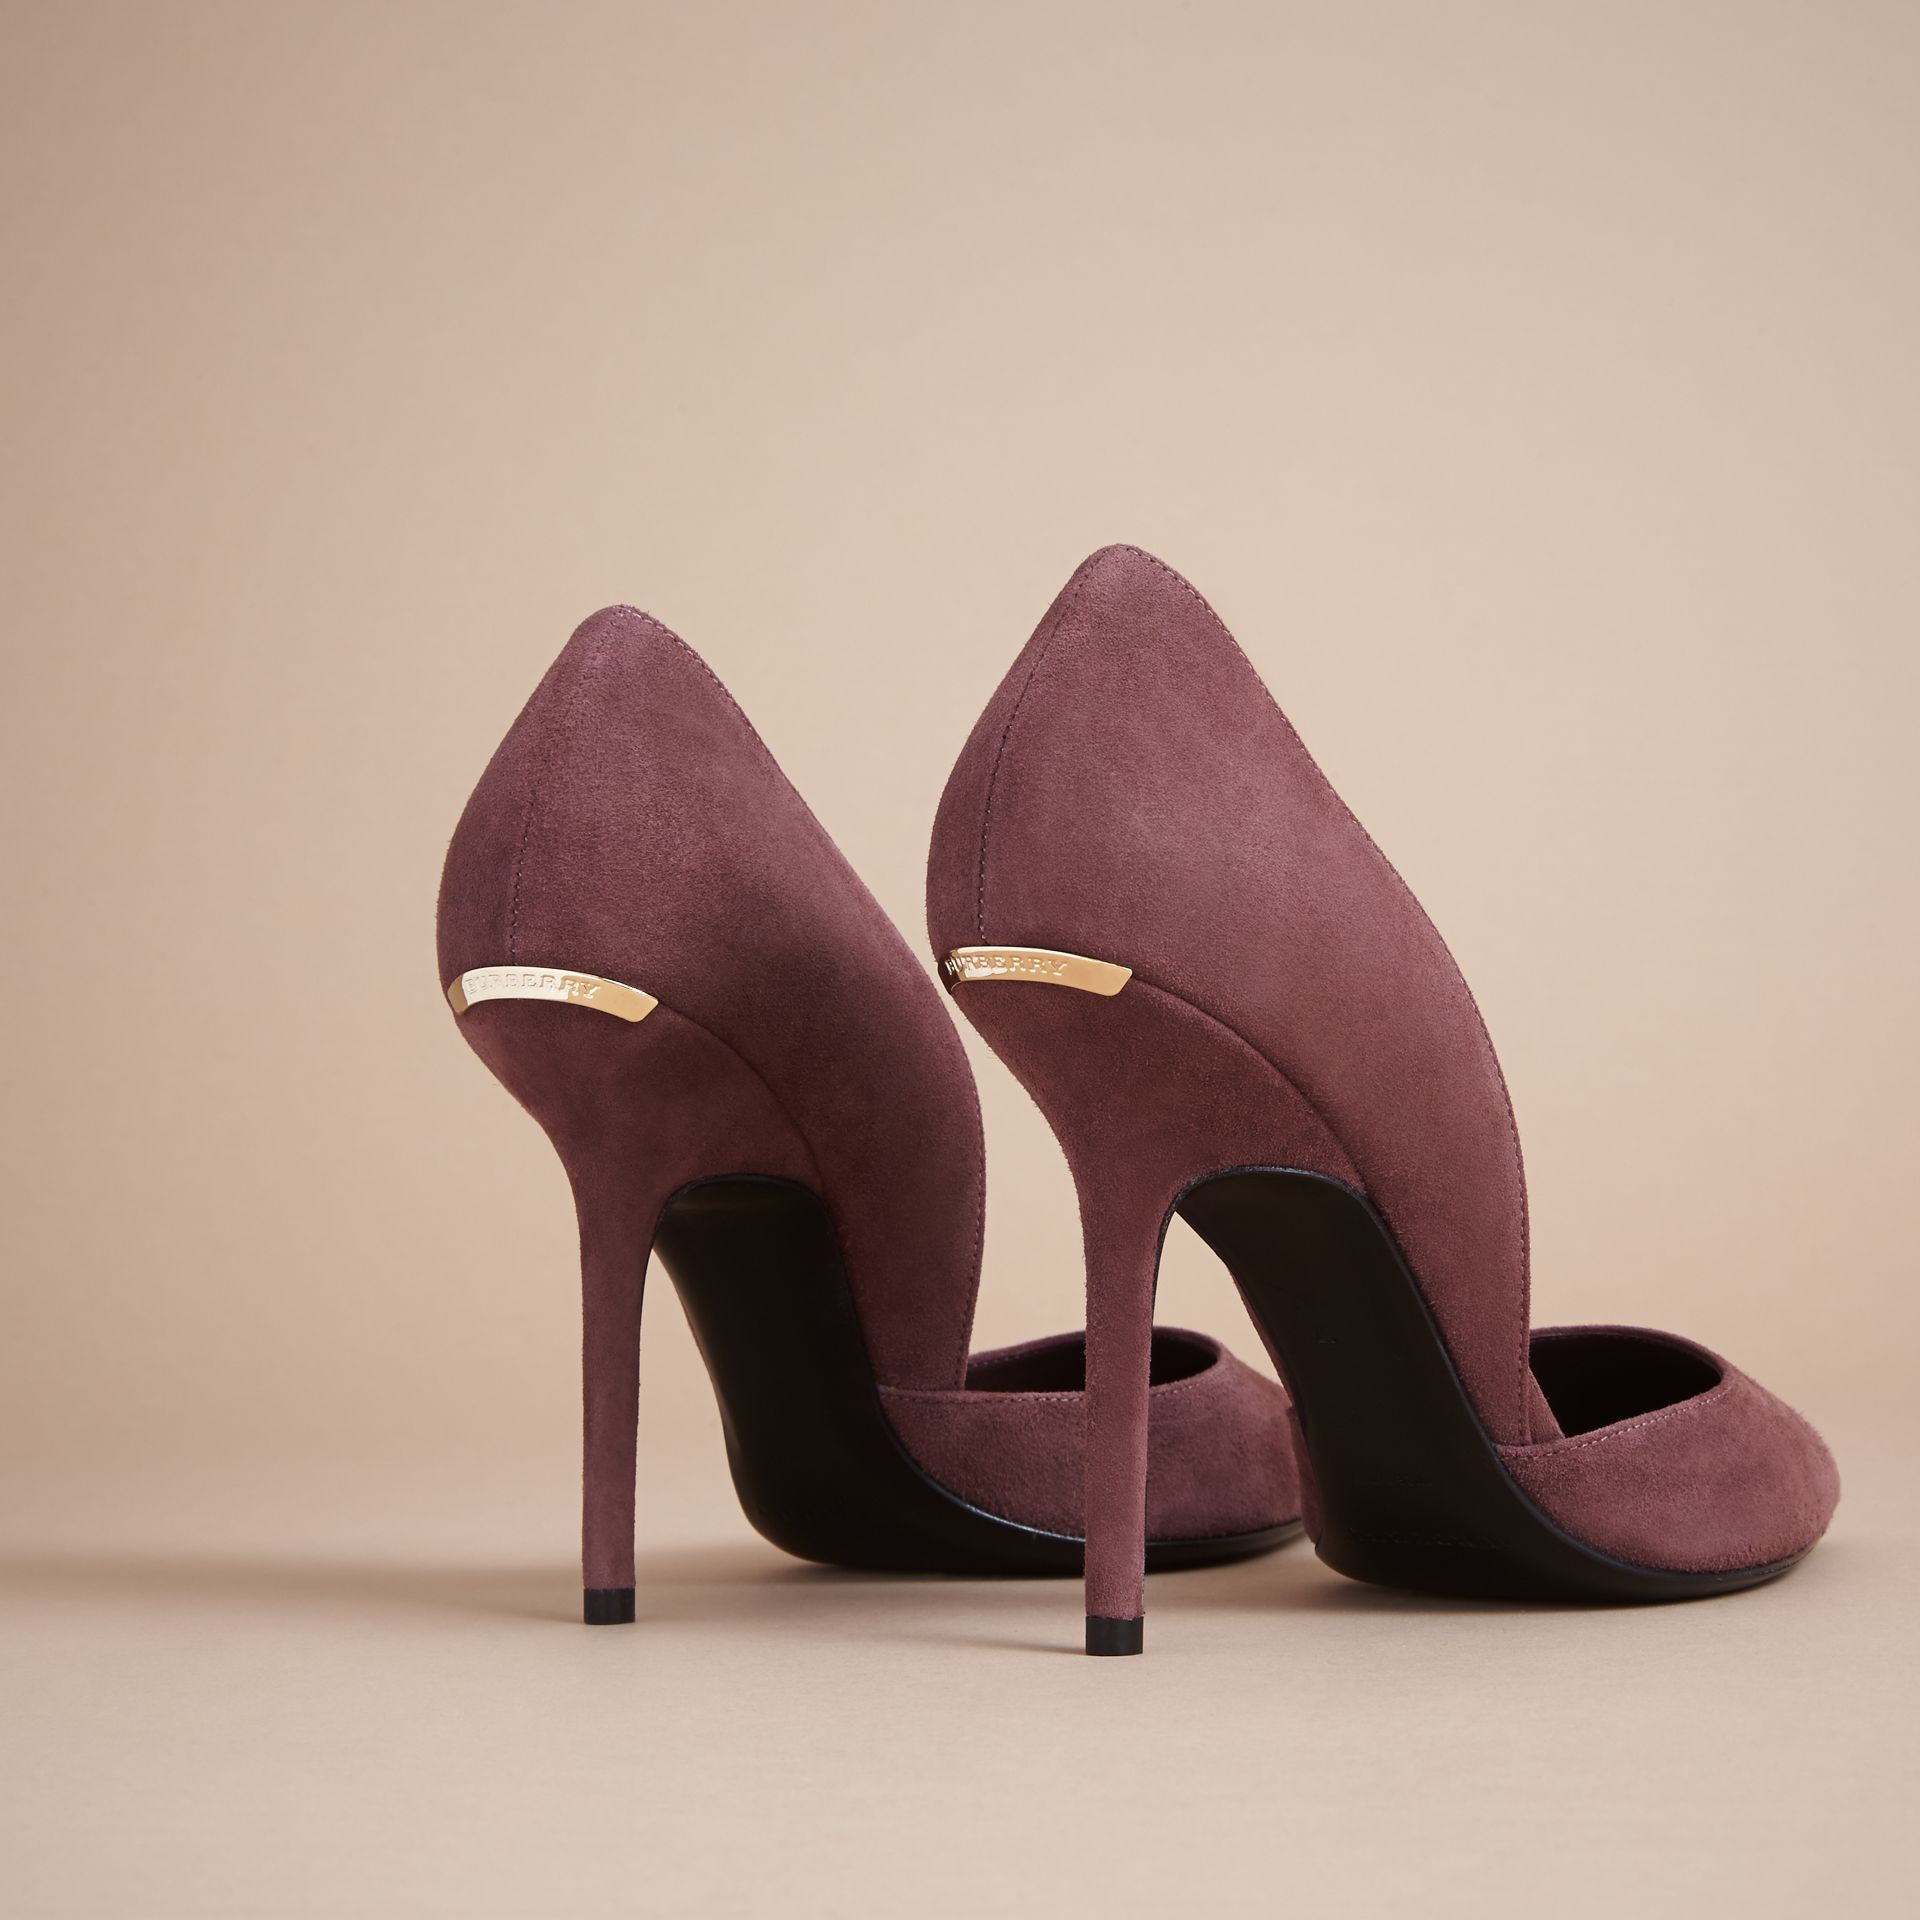 Escarpins d'Orsay à bout pointu en cuir velours (Rose Taupe) - Femme | Burberry - photo de la galerie 4